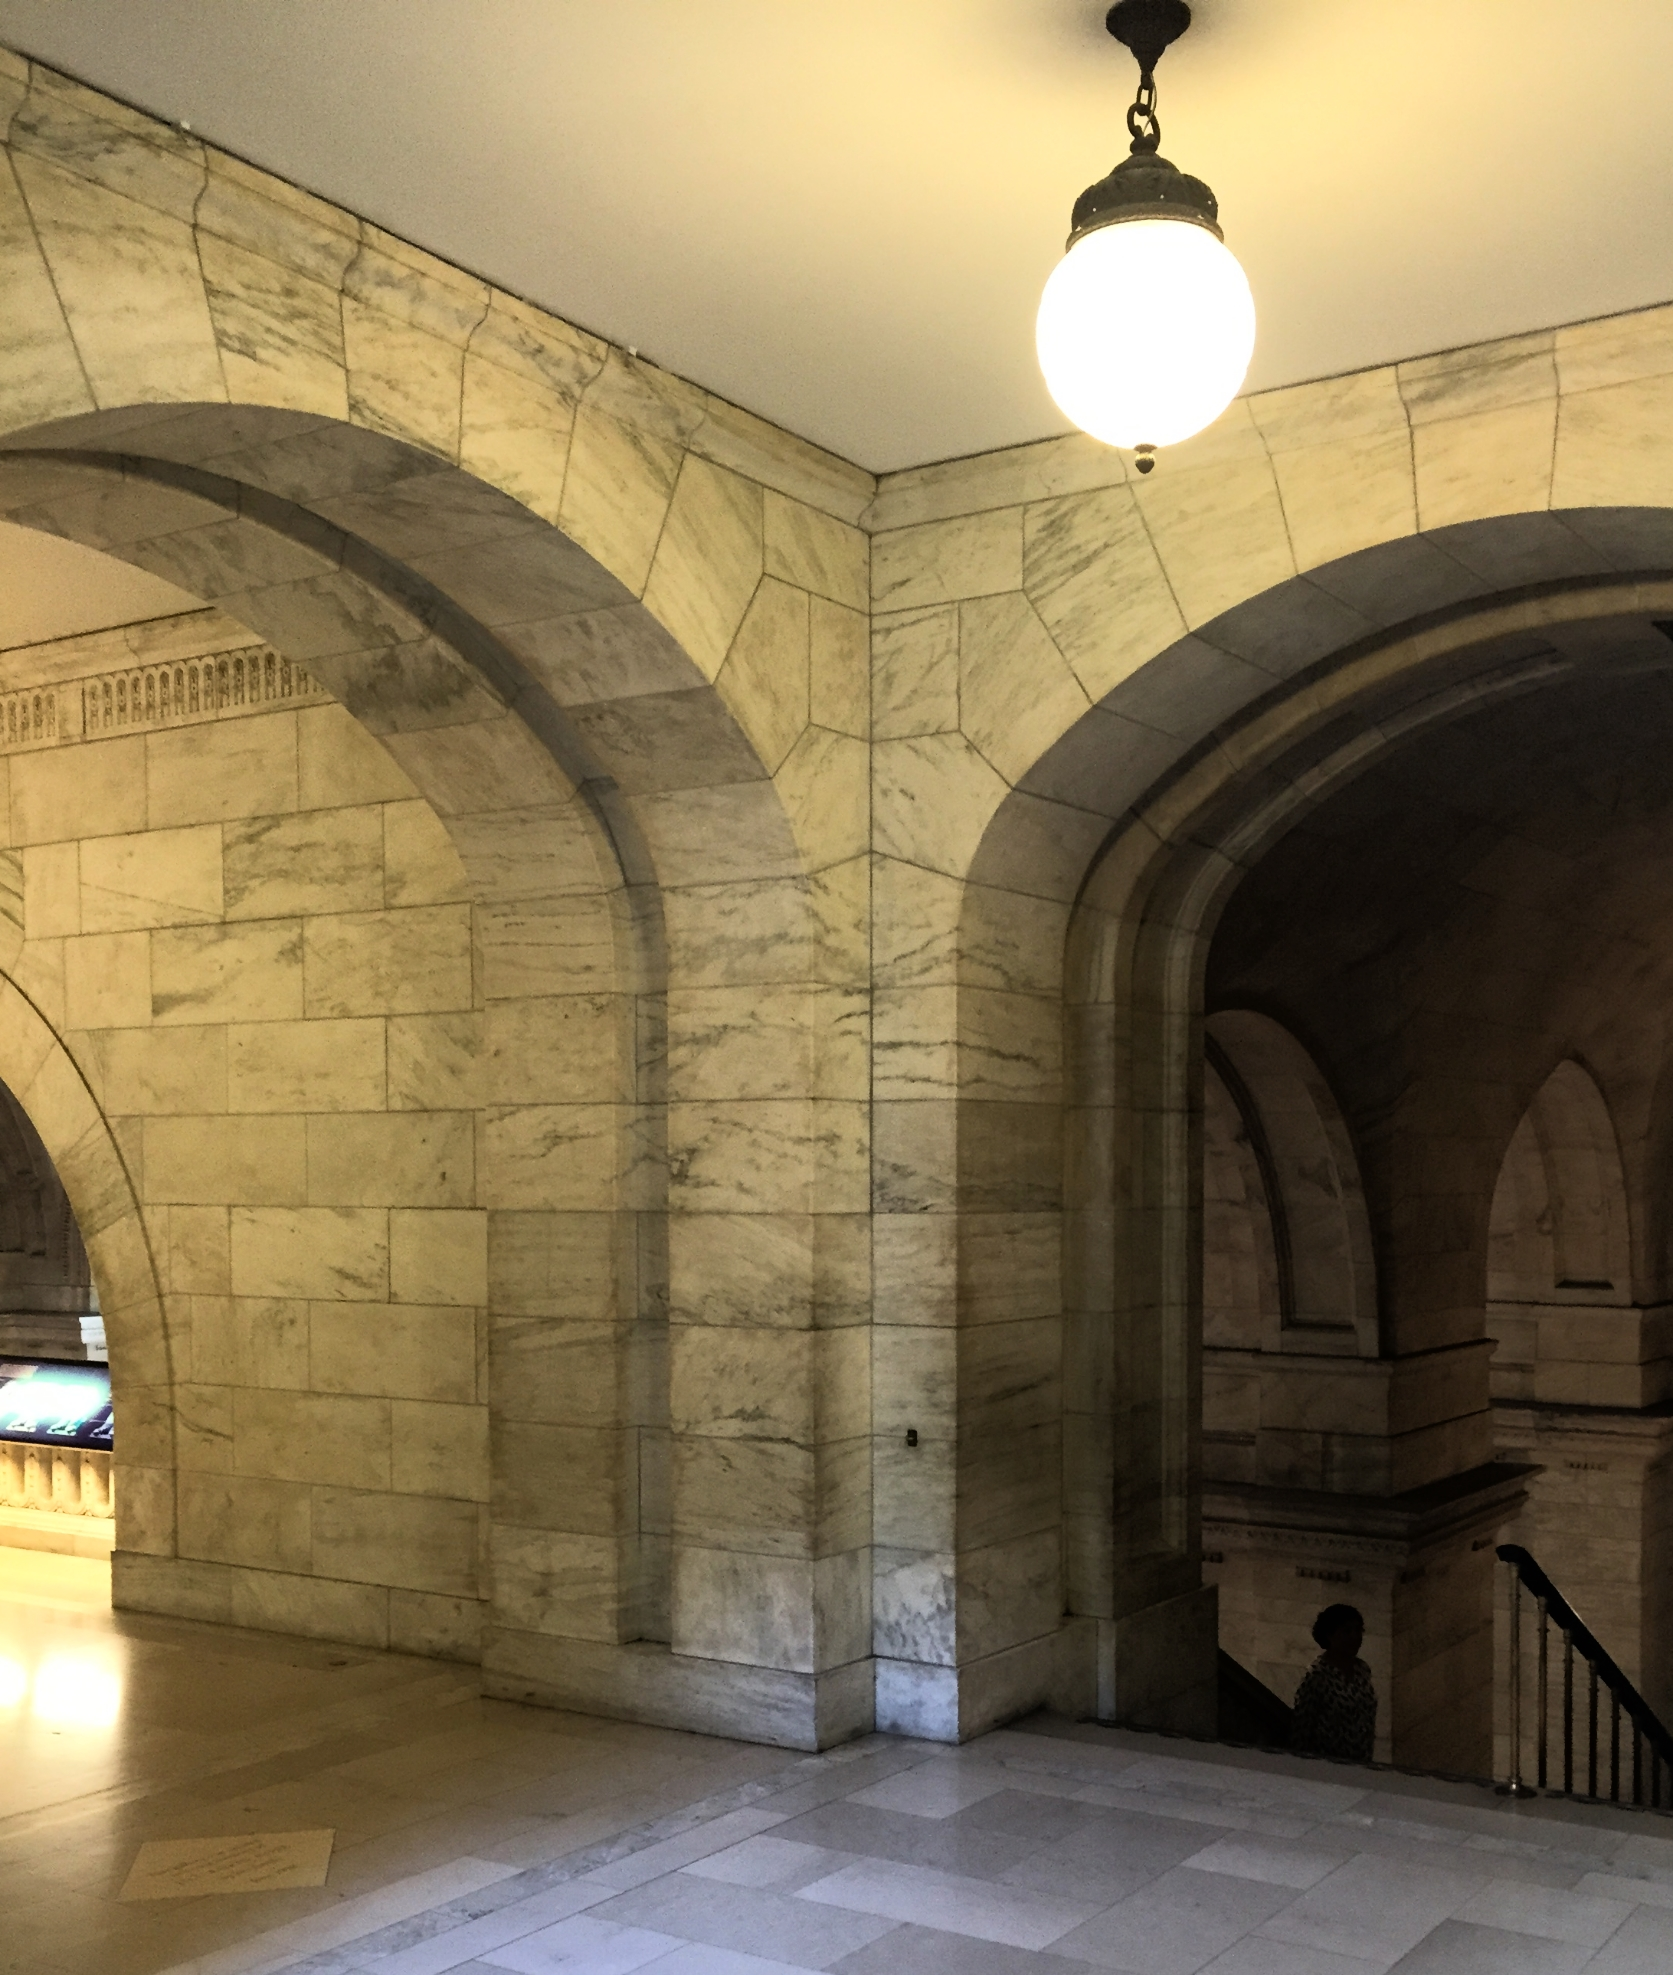 If you didn't know you were in the NYPL, you could totally be in Hogwarts.